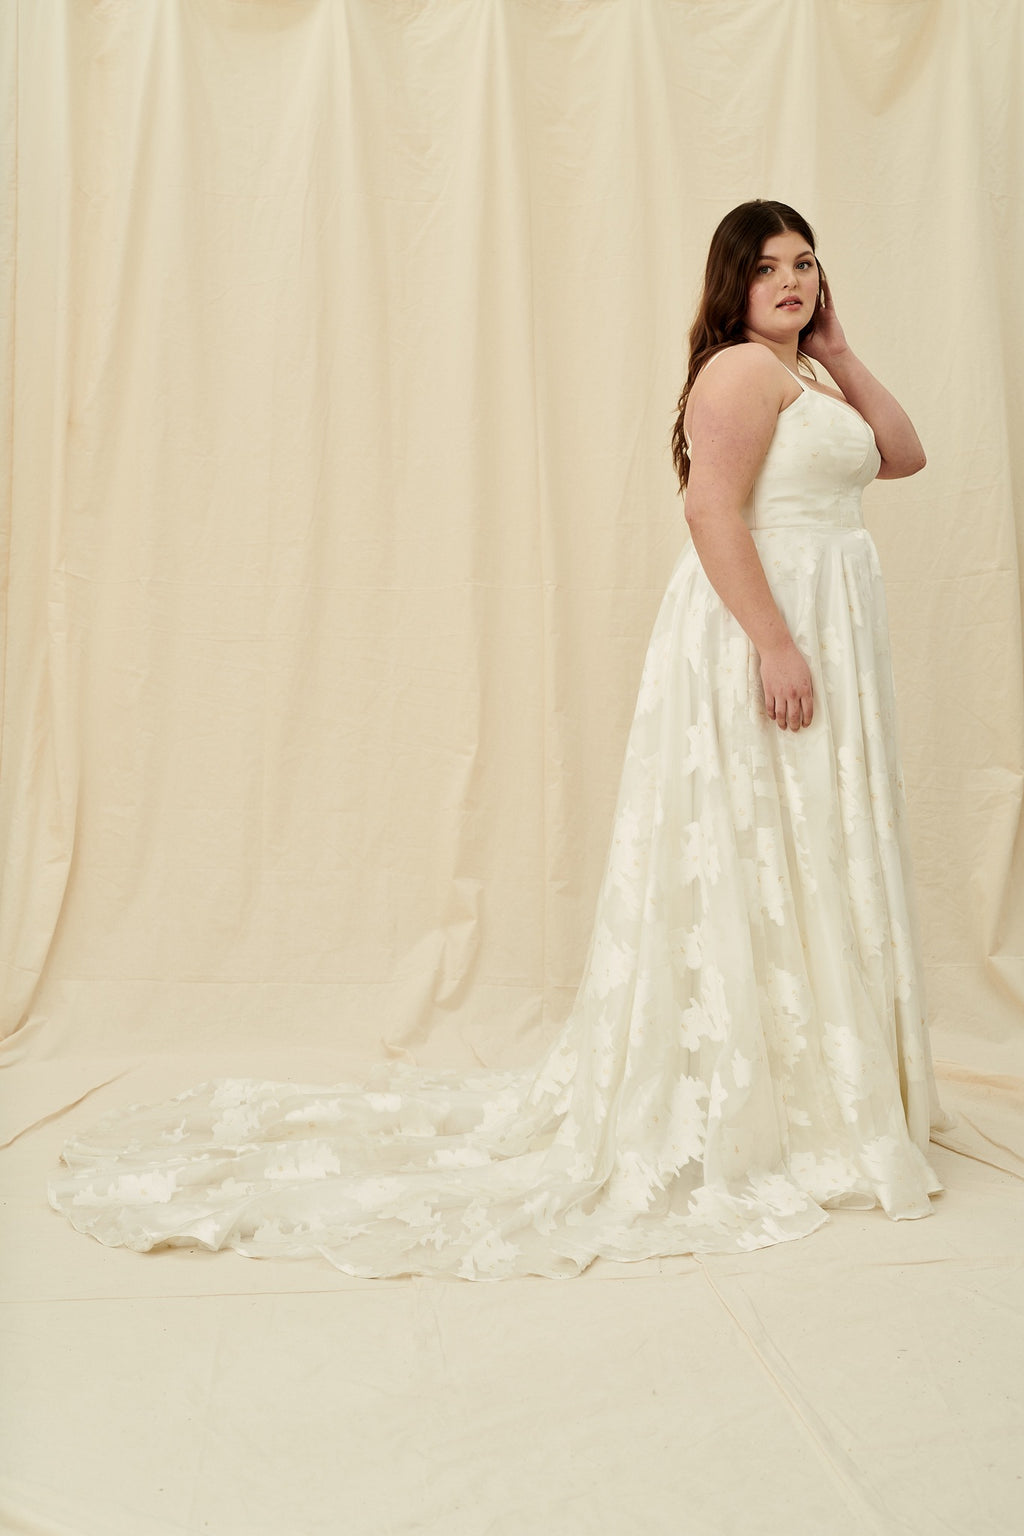 Shimmery gold organza plus size wedding dress with a corset back and long train